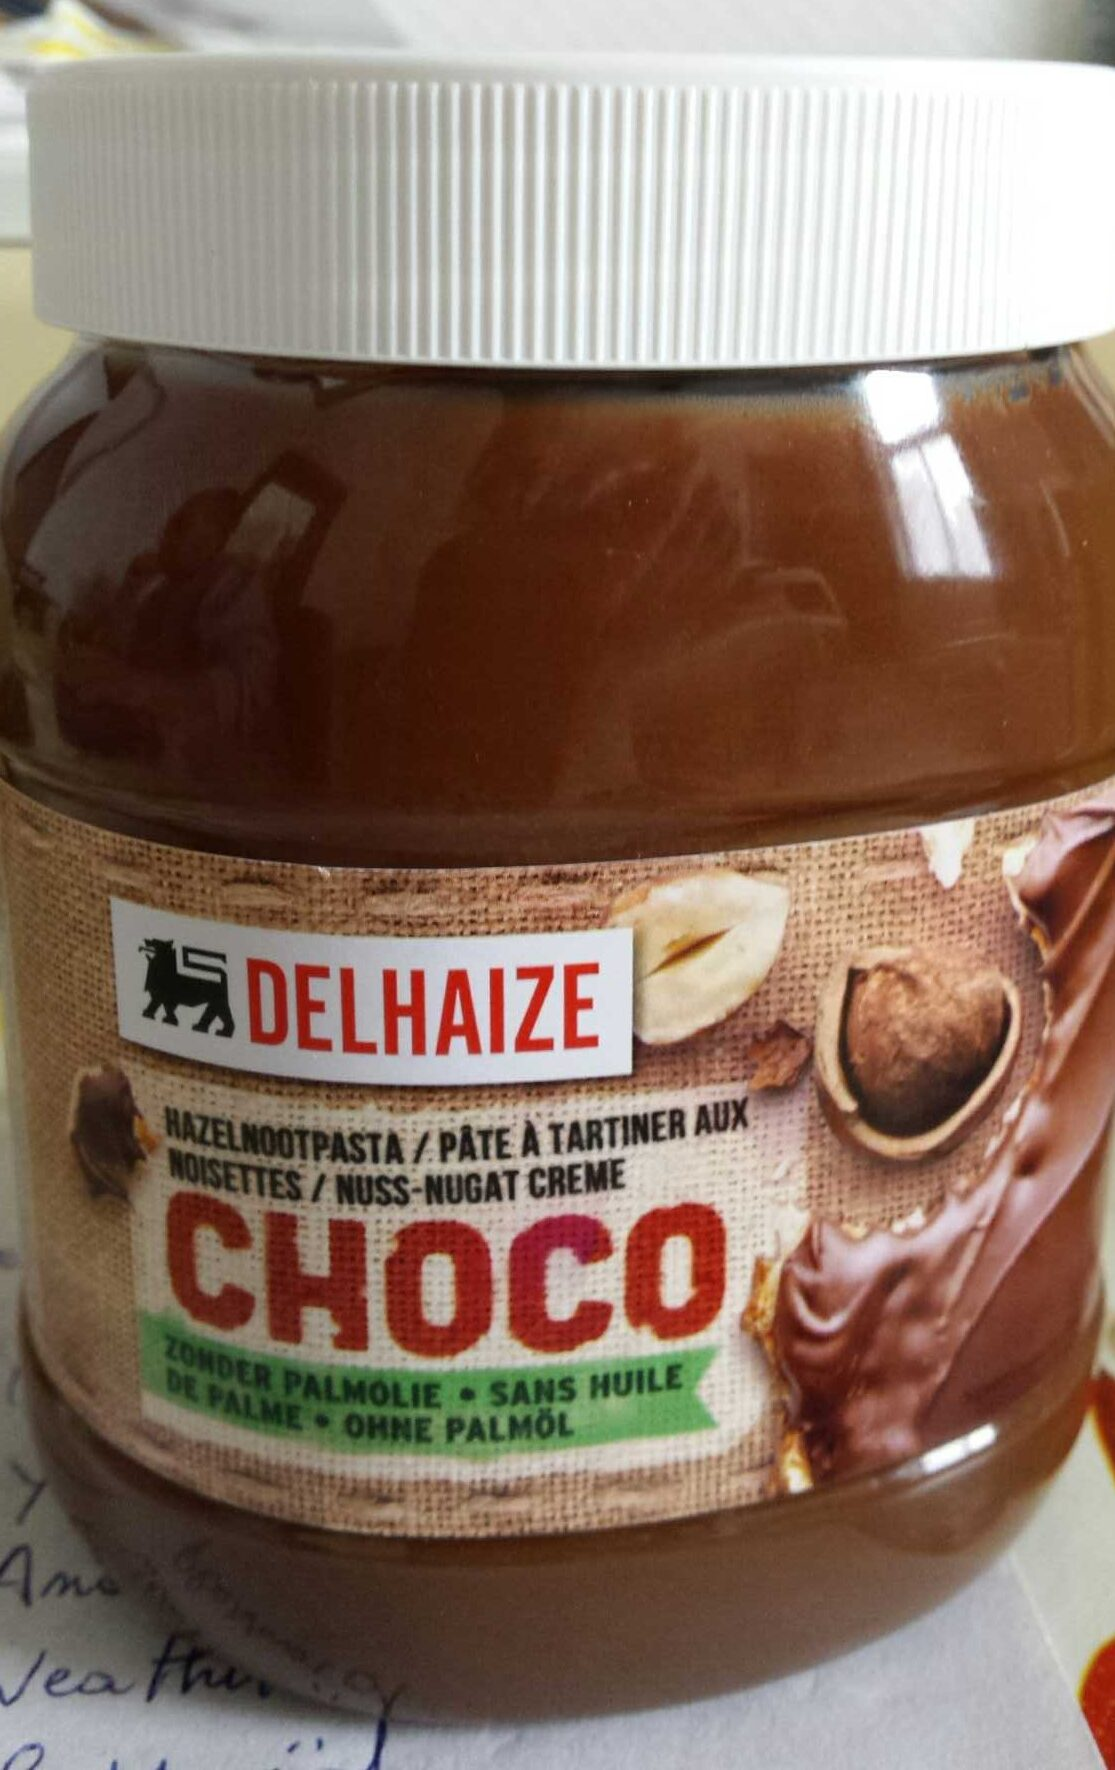 Choco DELHAIZE - Product - fr